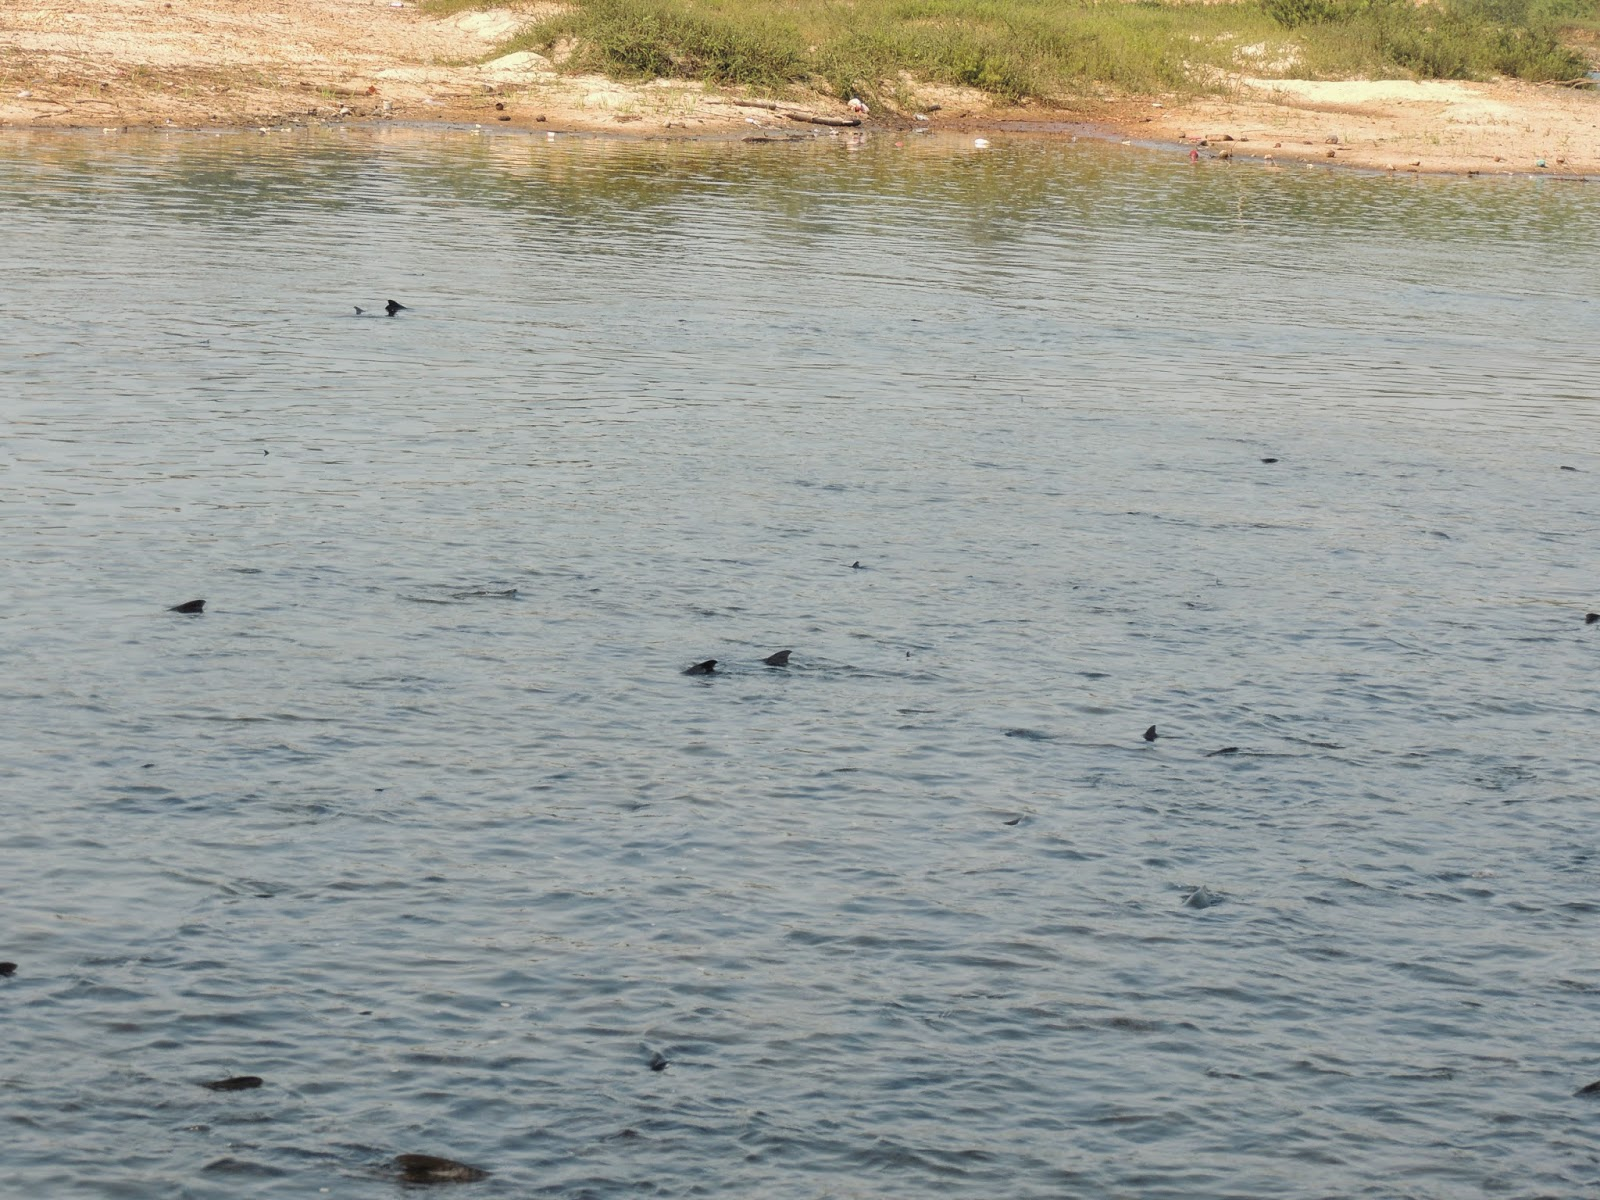 Black Fishes in Tunga River